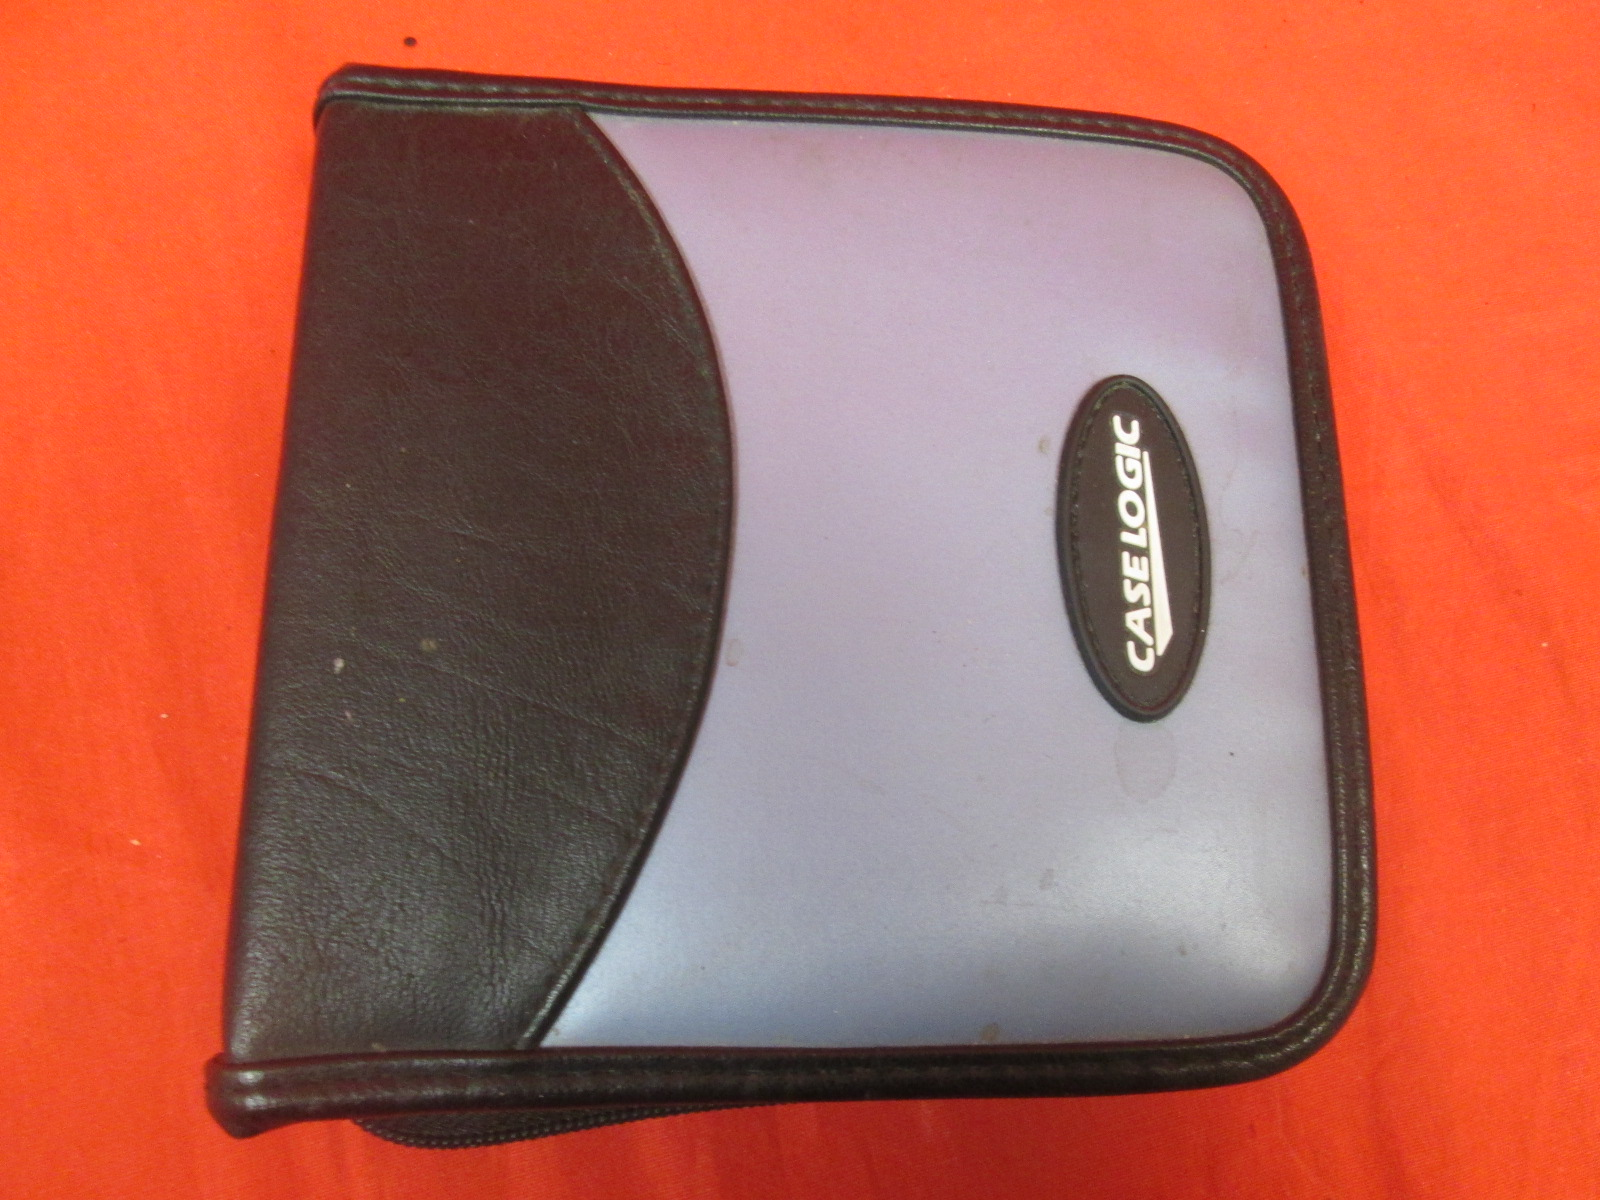 TW-24 CD Wallet 24 Capacity Nylon Metalic Blue By Case Logic On Audio